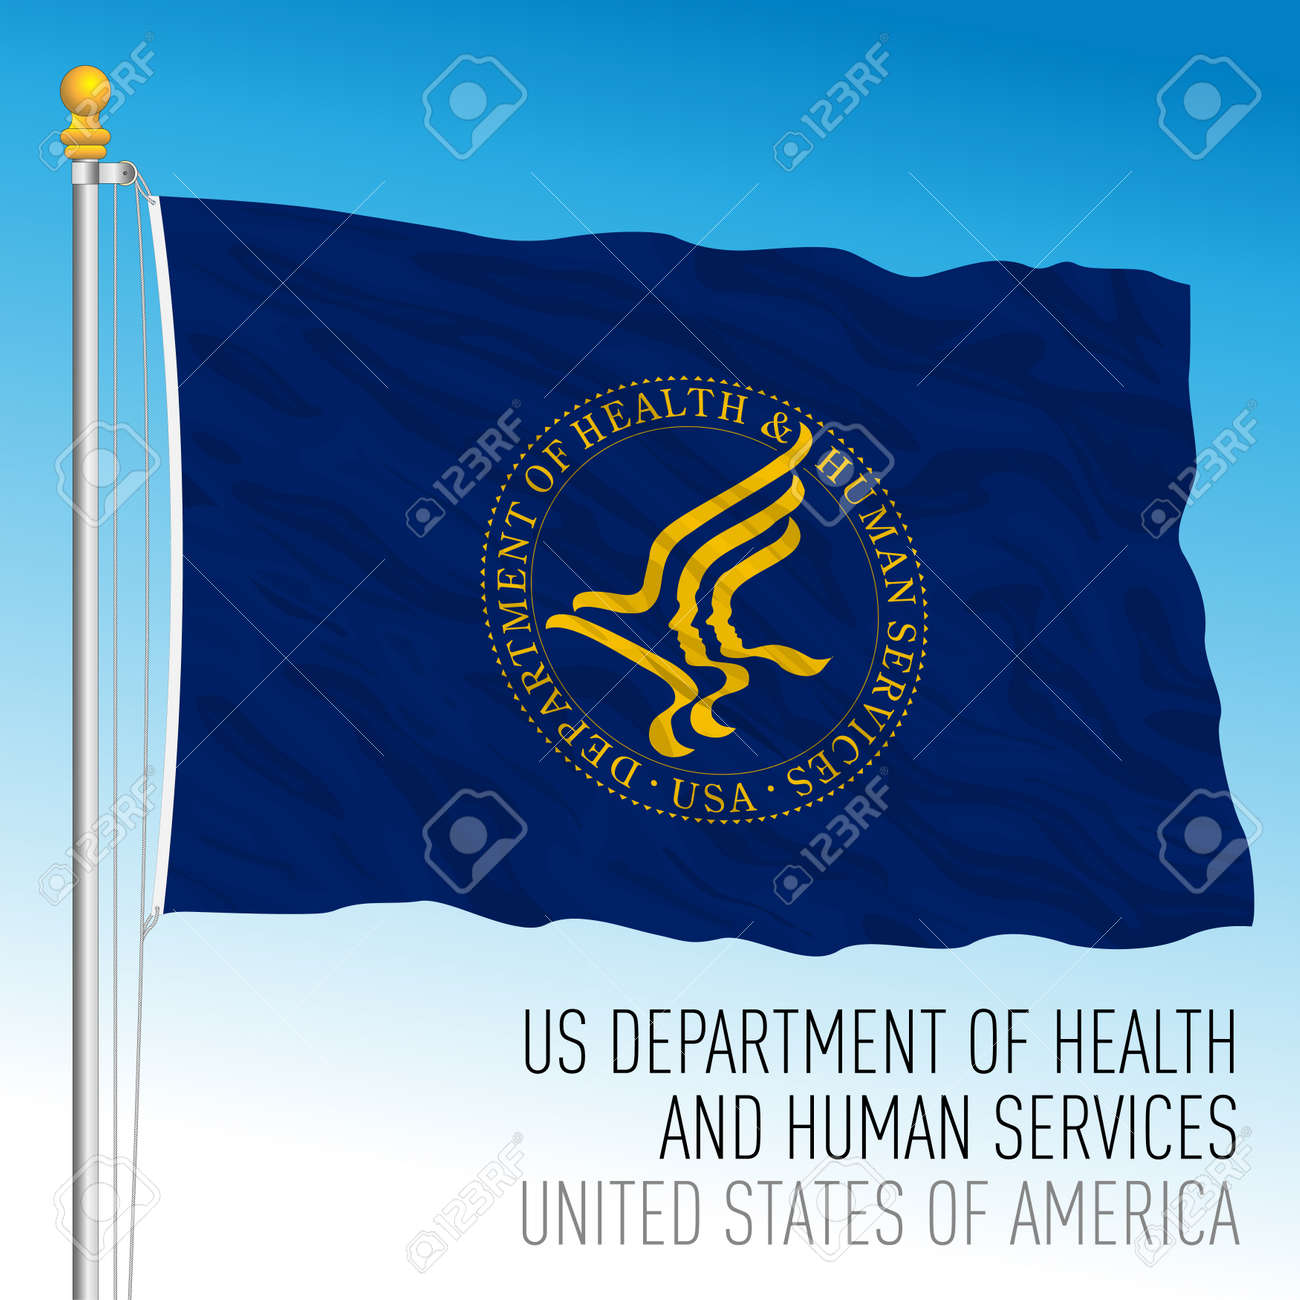 US Department of Health and Human Services, United States of America, vector illustration - 172846203